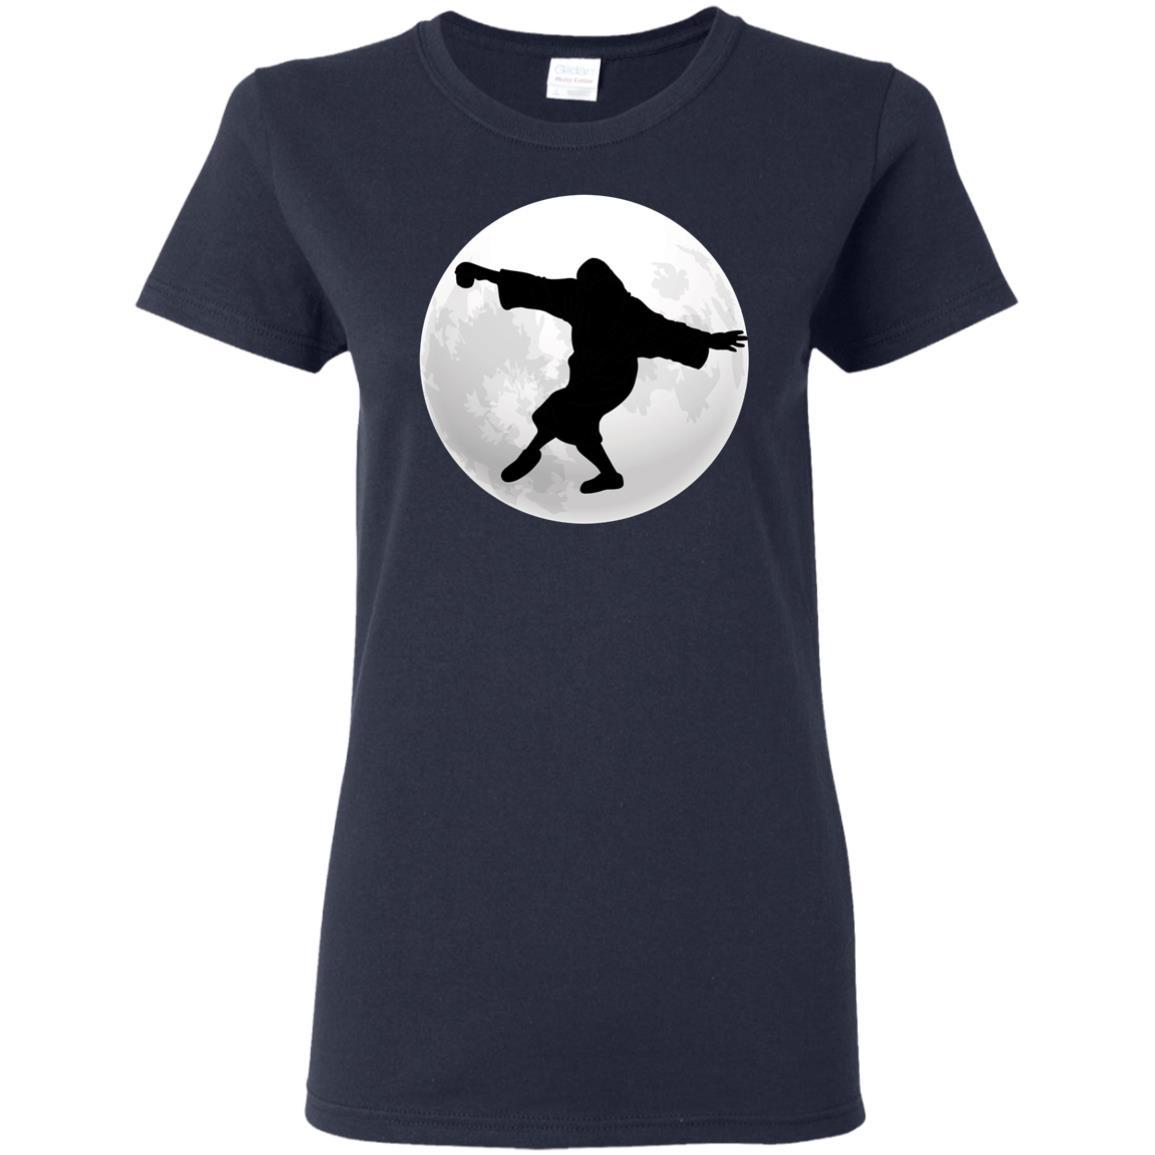 T-Shirts - Abide Moon Ladies Tee